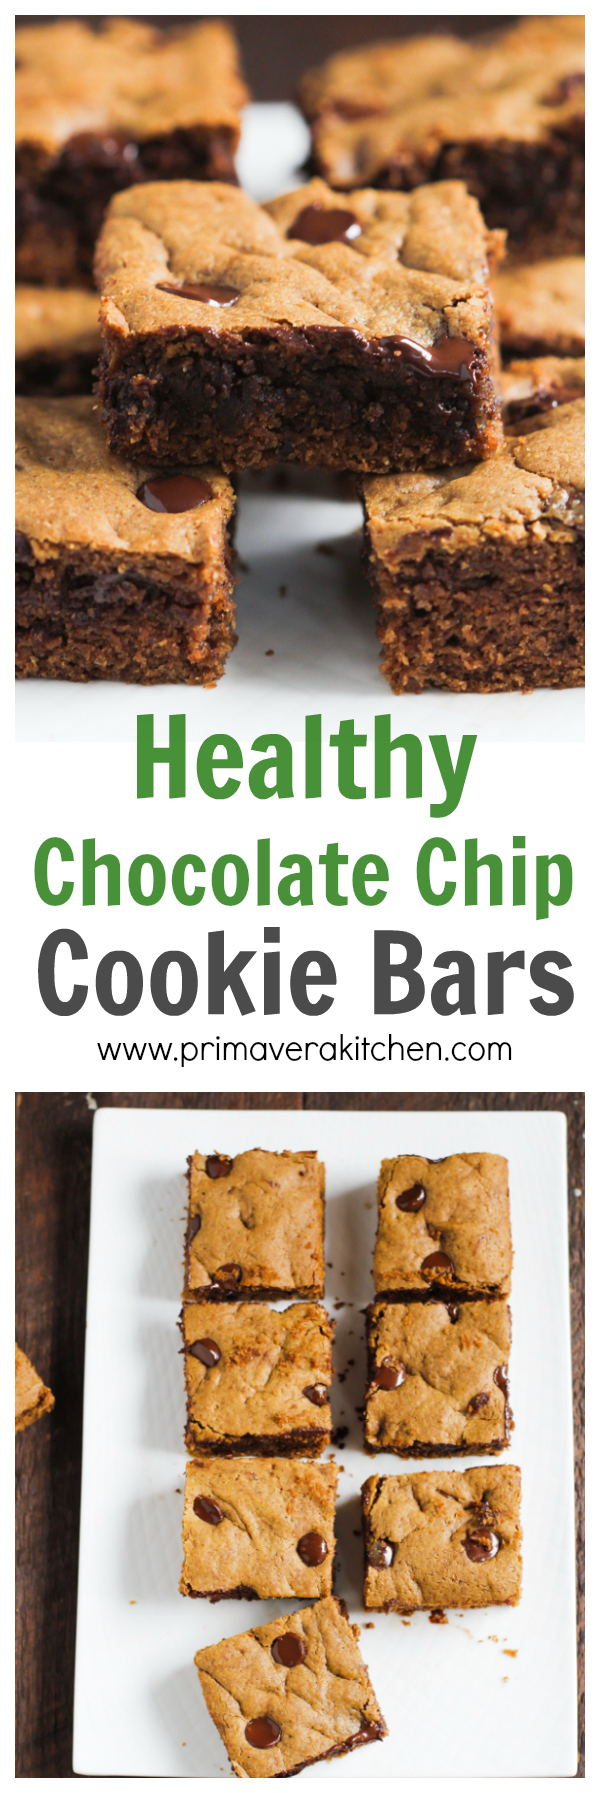 Healthier Chocolate Chip Cookie Bars - These healthy Chocolate Chip Cookie Bars are made with whole wheat flour, coconut sugar and semi-sweet chocolate chips. It tastes as good as the traditional recipes! | www.primaverakitchen.com